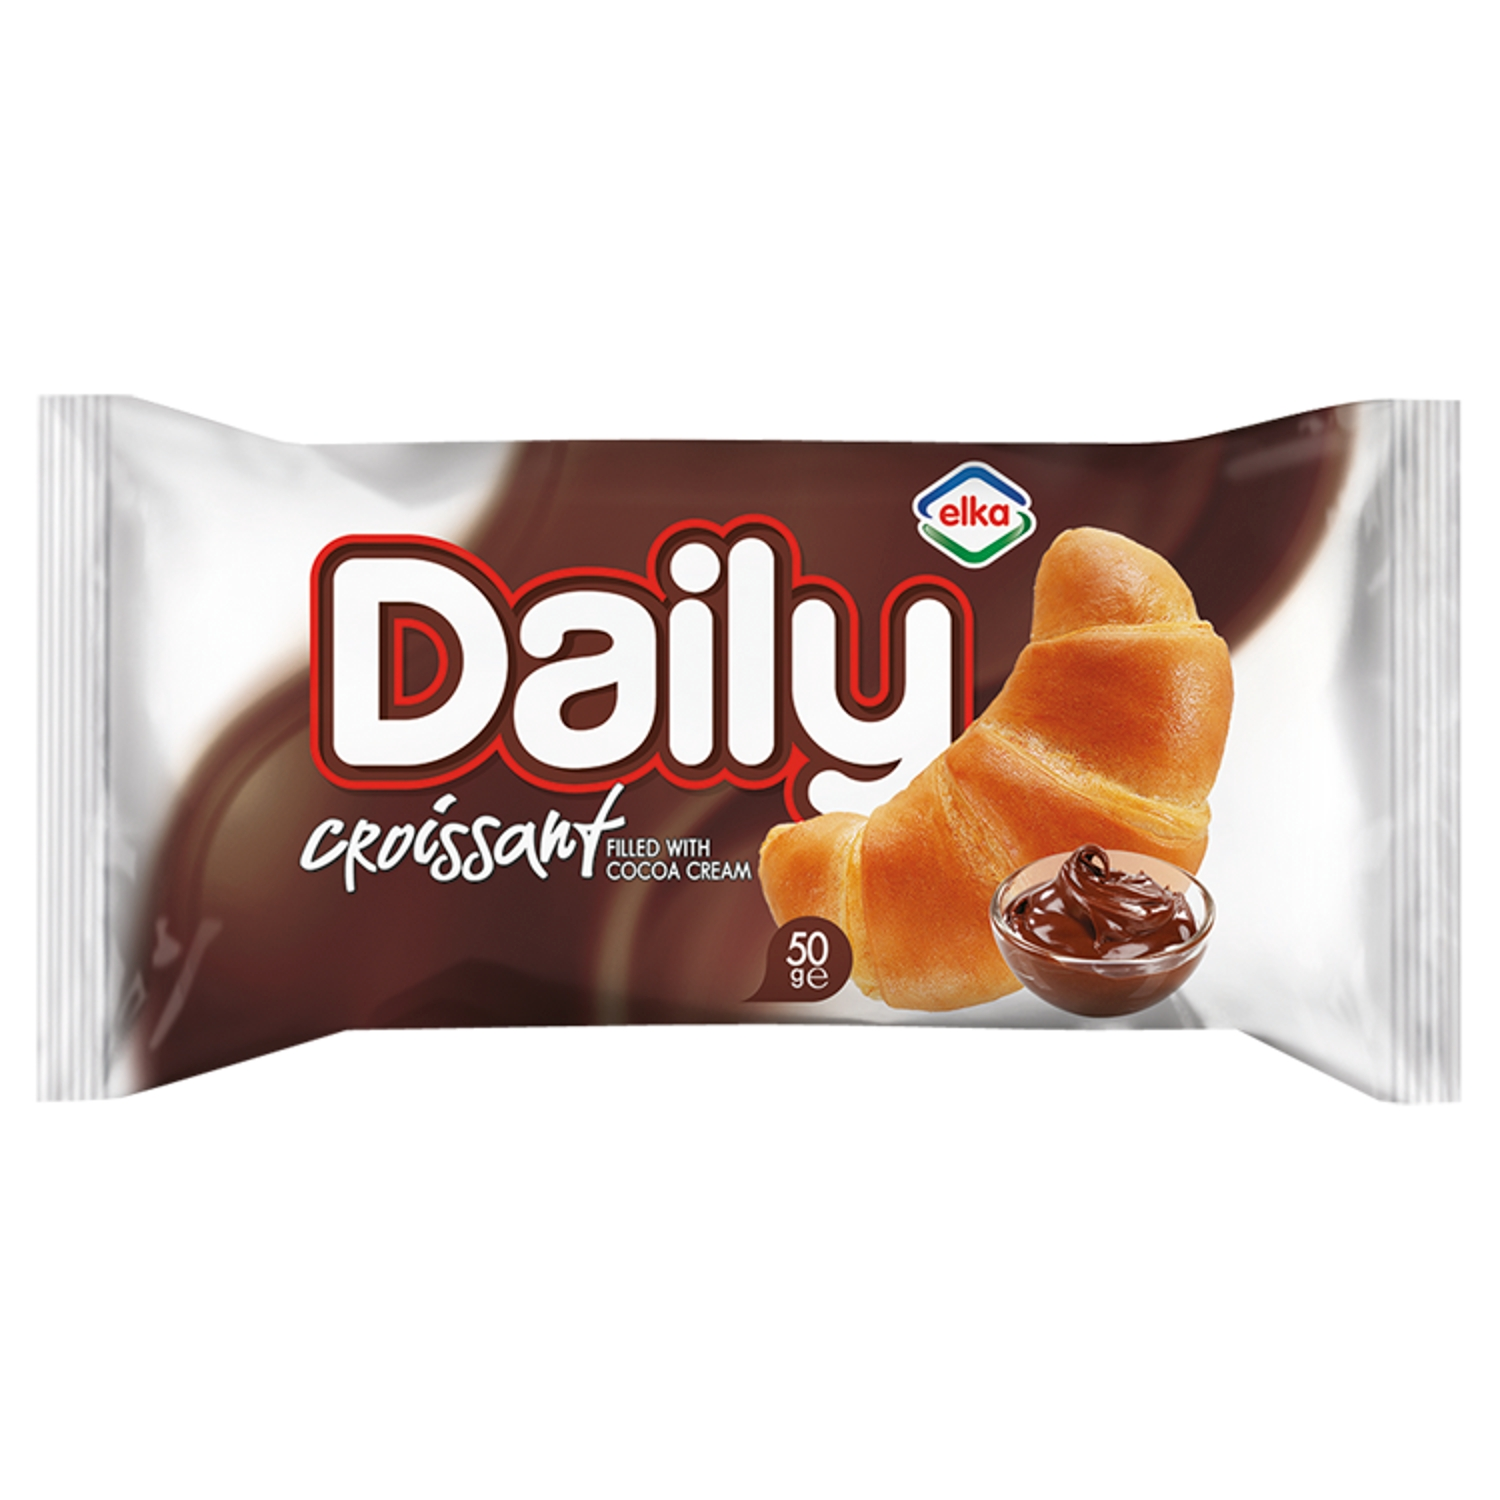 Elka Daily Croissant with Cocoa Cream Filling 50g